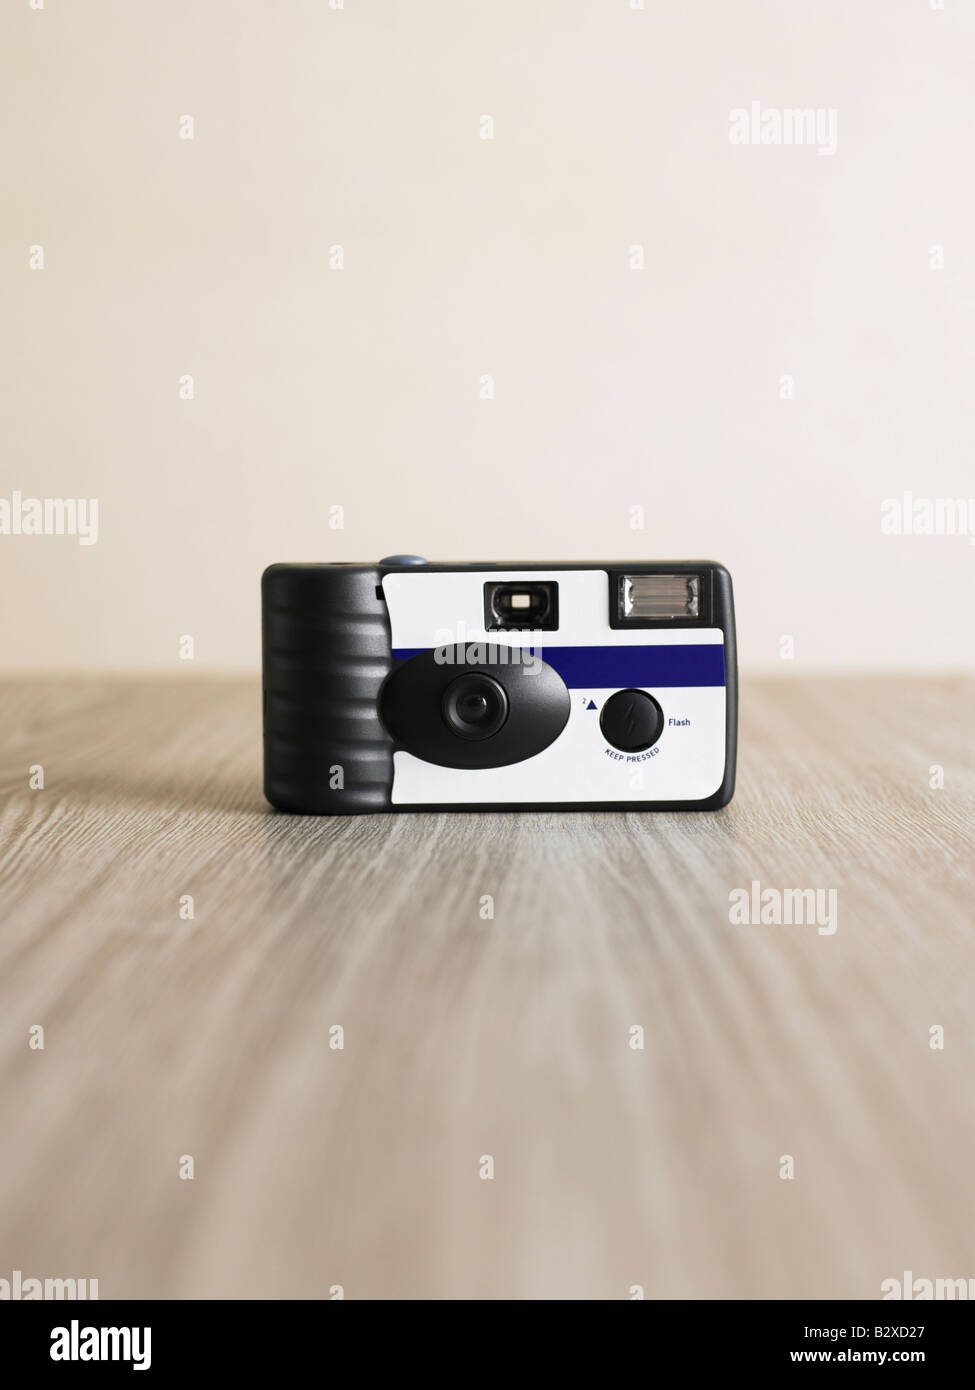 disposable camera - Stock Image